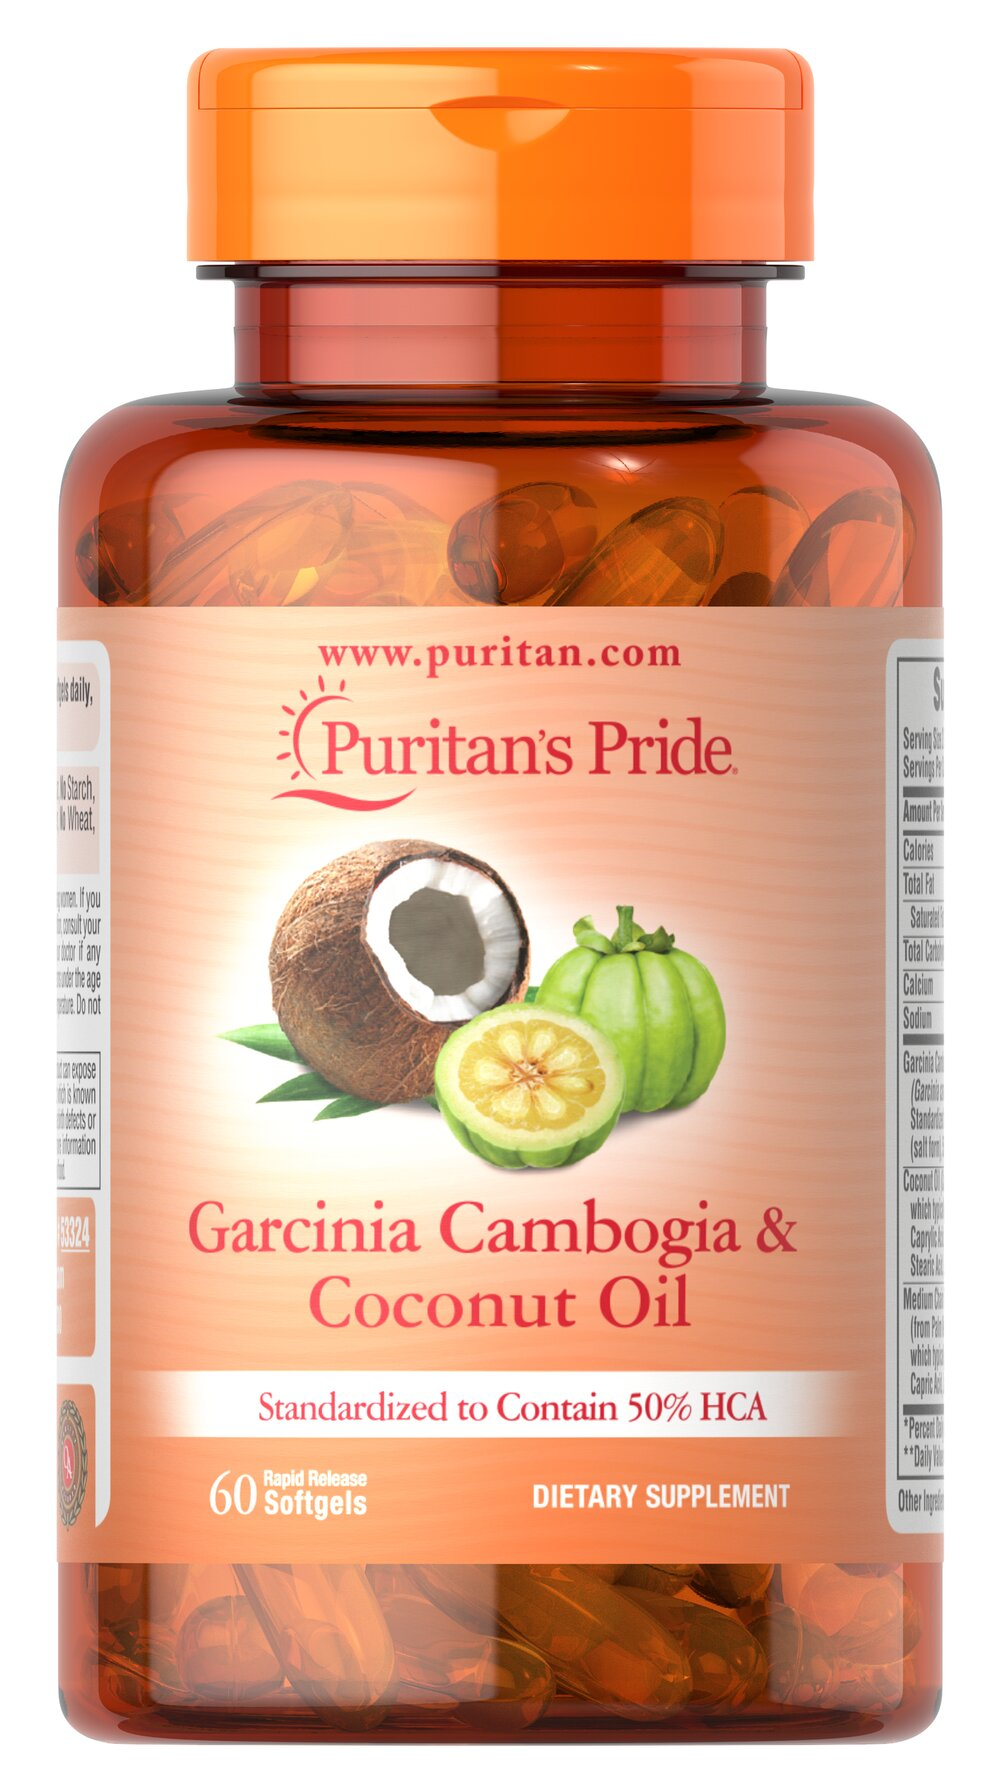 """Garcinia Cambogia 500 mg plus Coconut Oil 500mg <p>Garcinia Cambogia is related to the superfruit Mangosteen and is sometimes called tamarind, brindleberry or camboge. Garcinia Cambogia has been used in Ayurvedic practices for hundreds of years. <br /></p><p>The rind of this fruit contains the revolutionary ingredient Hydroxycitric Acid (HCA), which is considered the """"active compound"""". These capsules contain a standardized supplement to provide 500 mg of HCA per serving."""